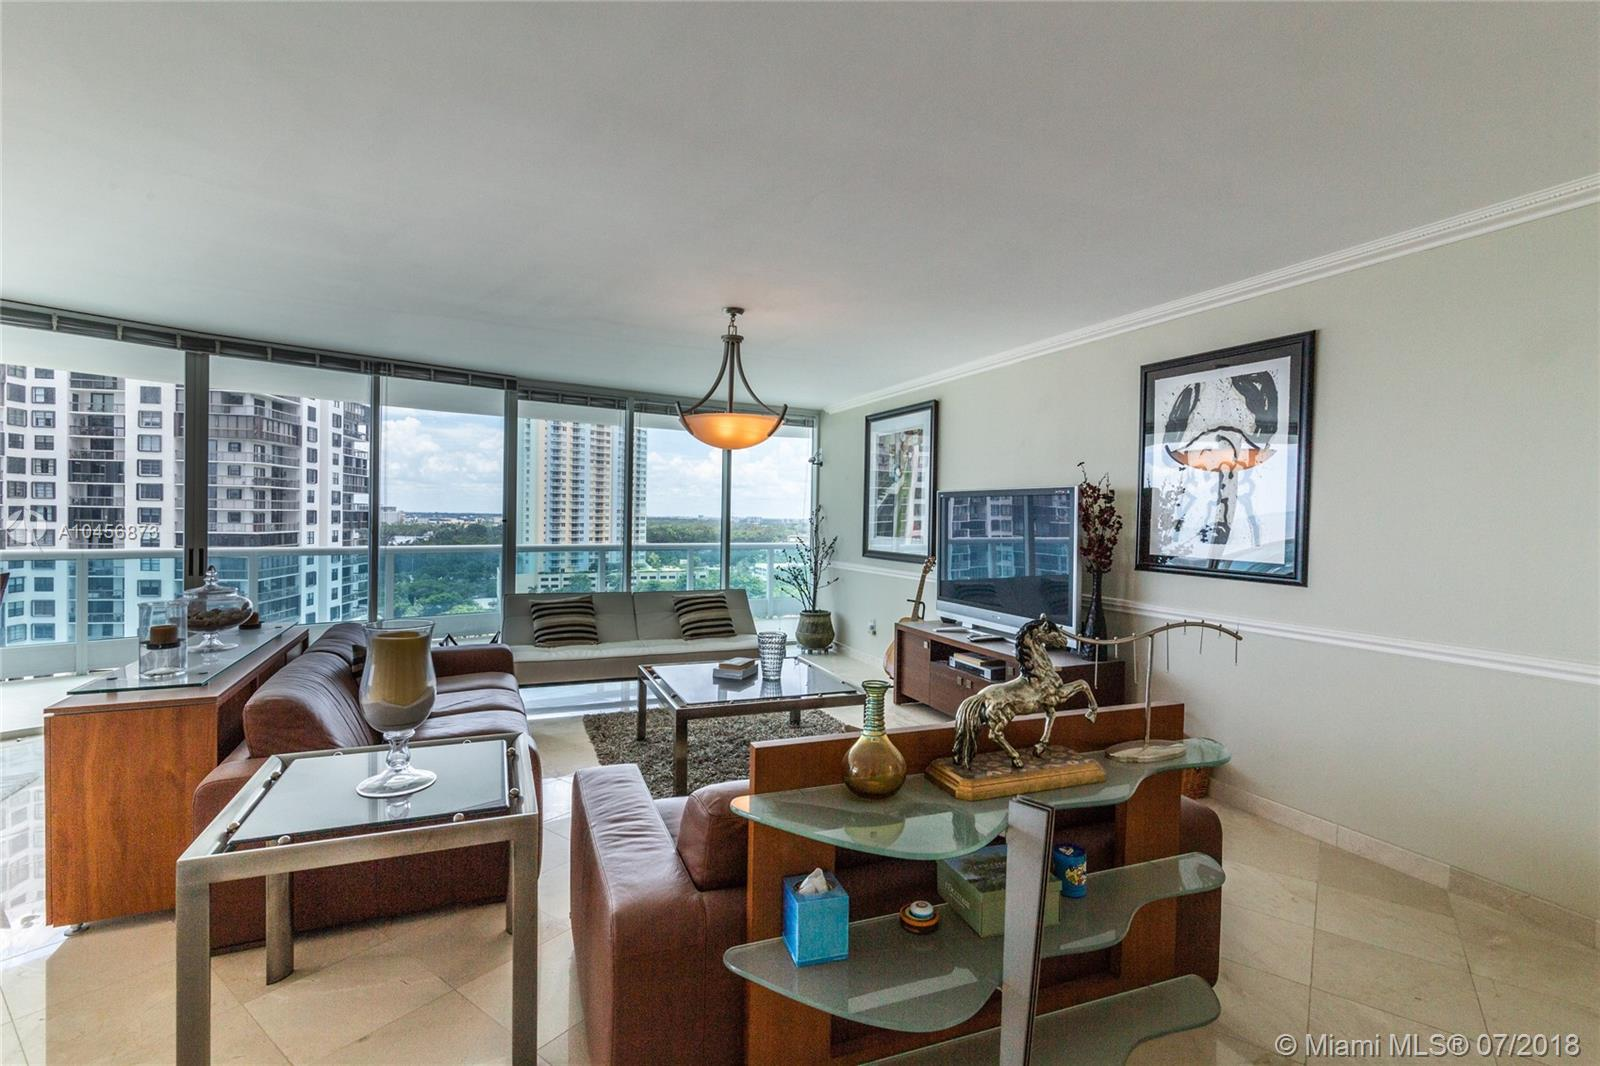 2127 Brickell Avenue, Miami, FL 33129, Bristol Tower Condominium #1702, Brickell, Miami A10456873 image #6